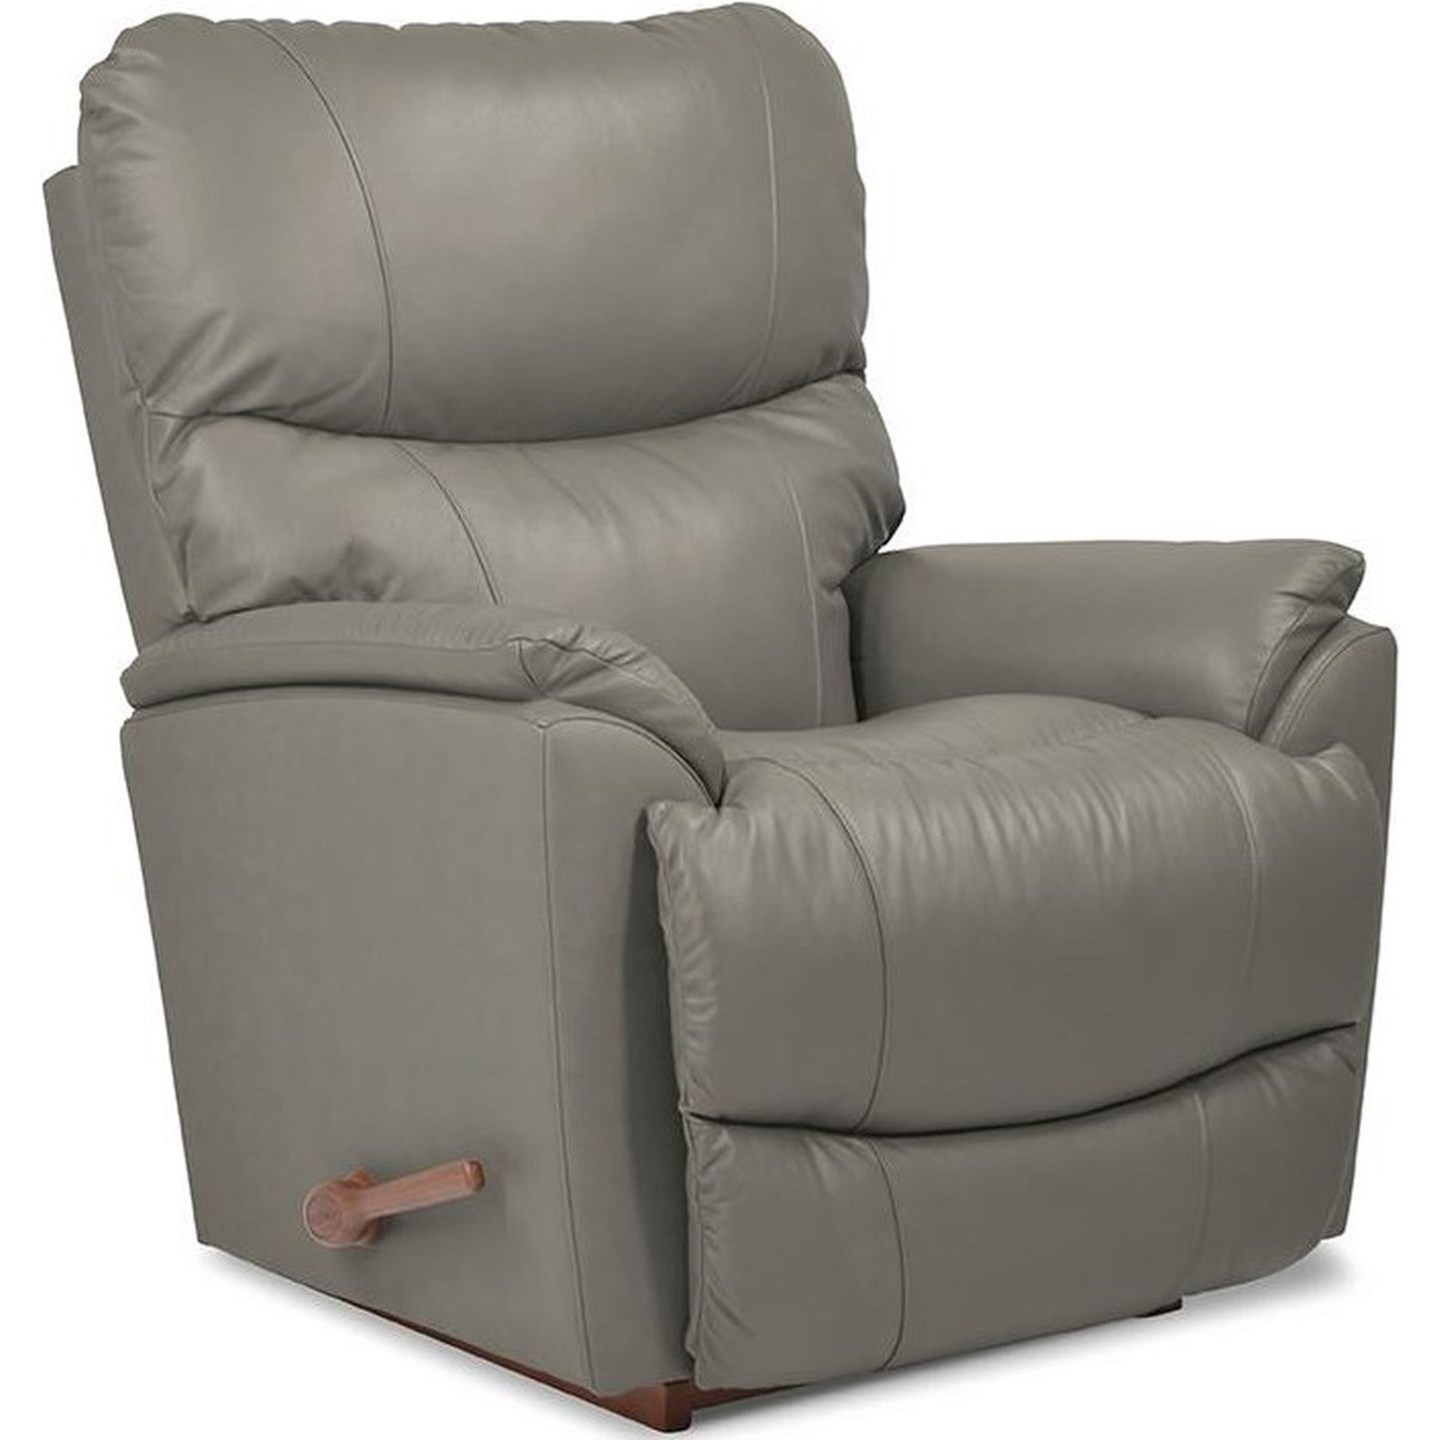 Trouper Rocking Recliner by La-Z-Boy at Fisher Home Furnishings